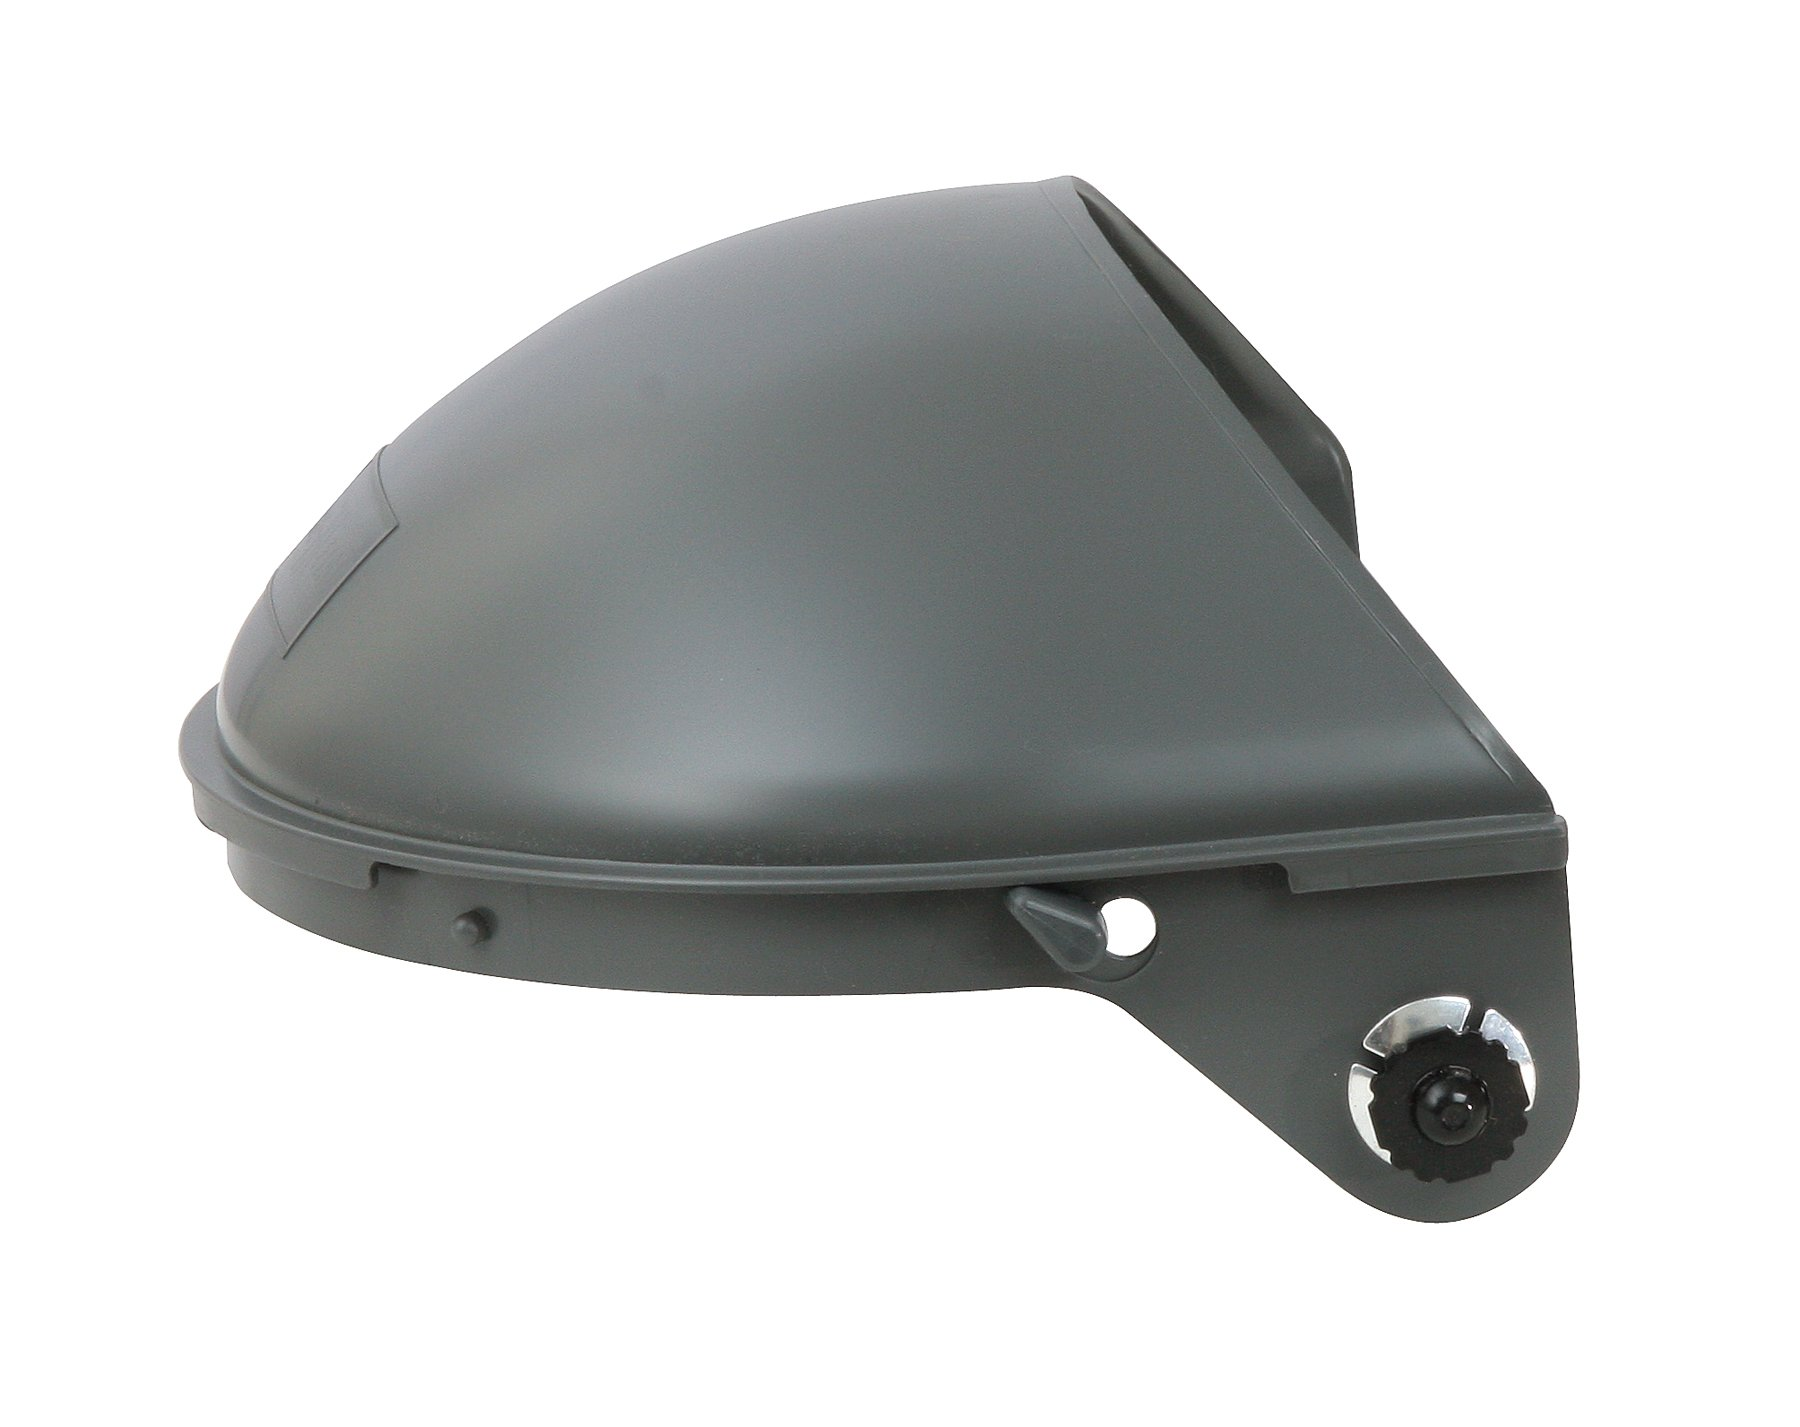 Fibre-Metal by Honeywell F4500 Model 4001 with Quick-Lok Mounting Cups High Performance Face shield System for 7'' Crown Size Hard Hats